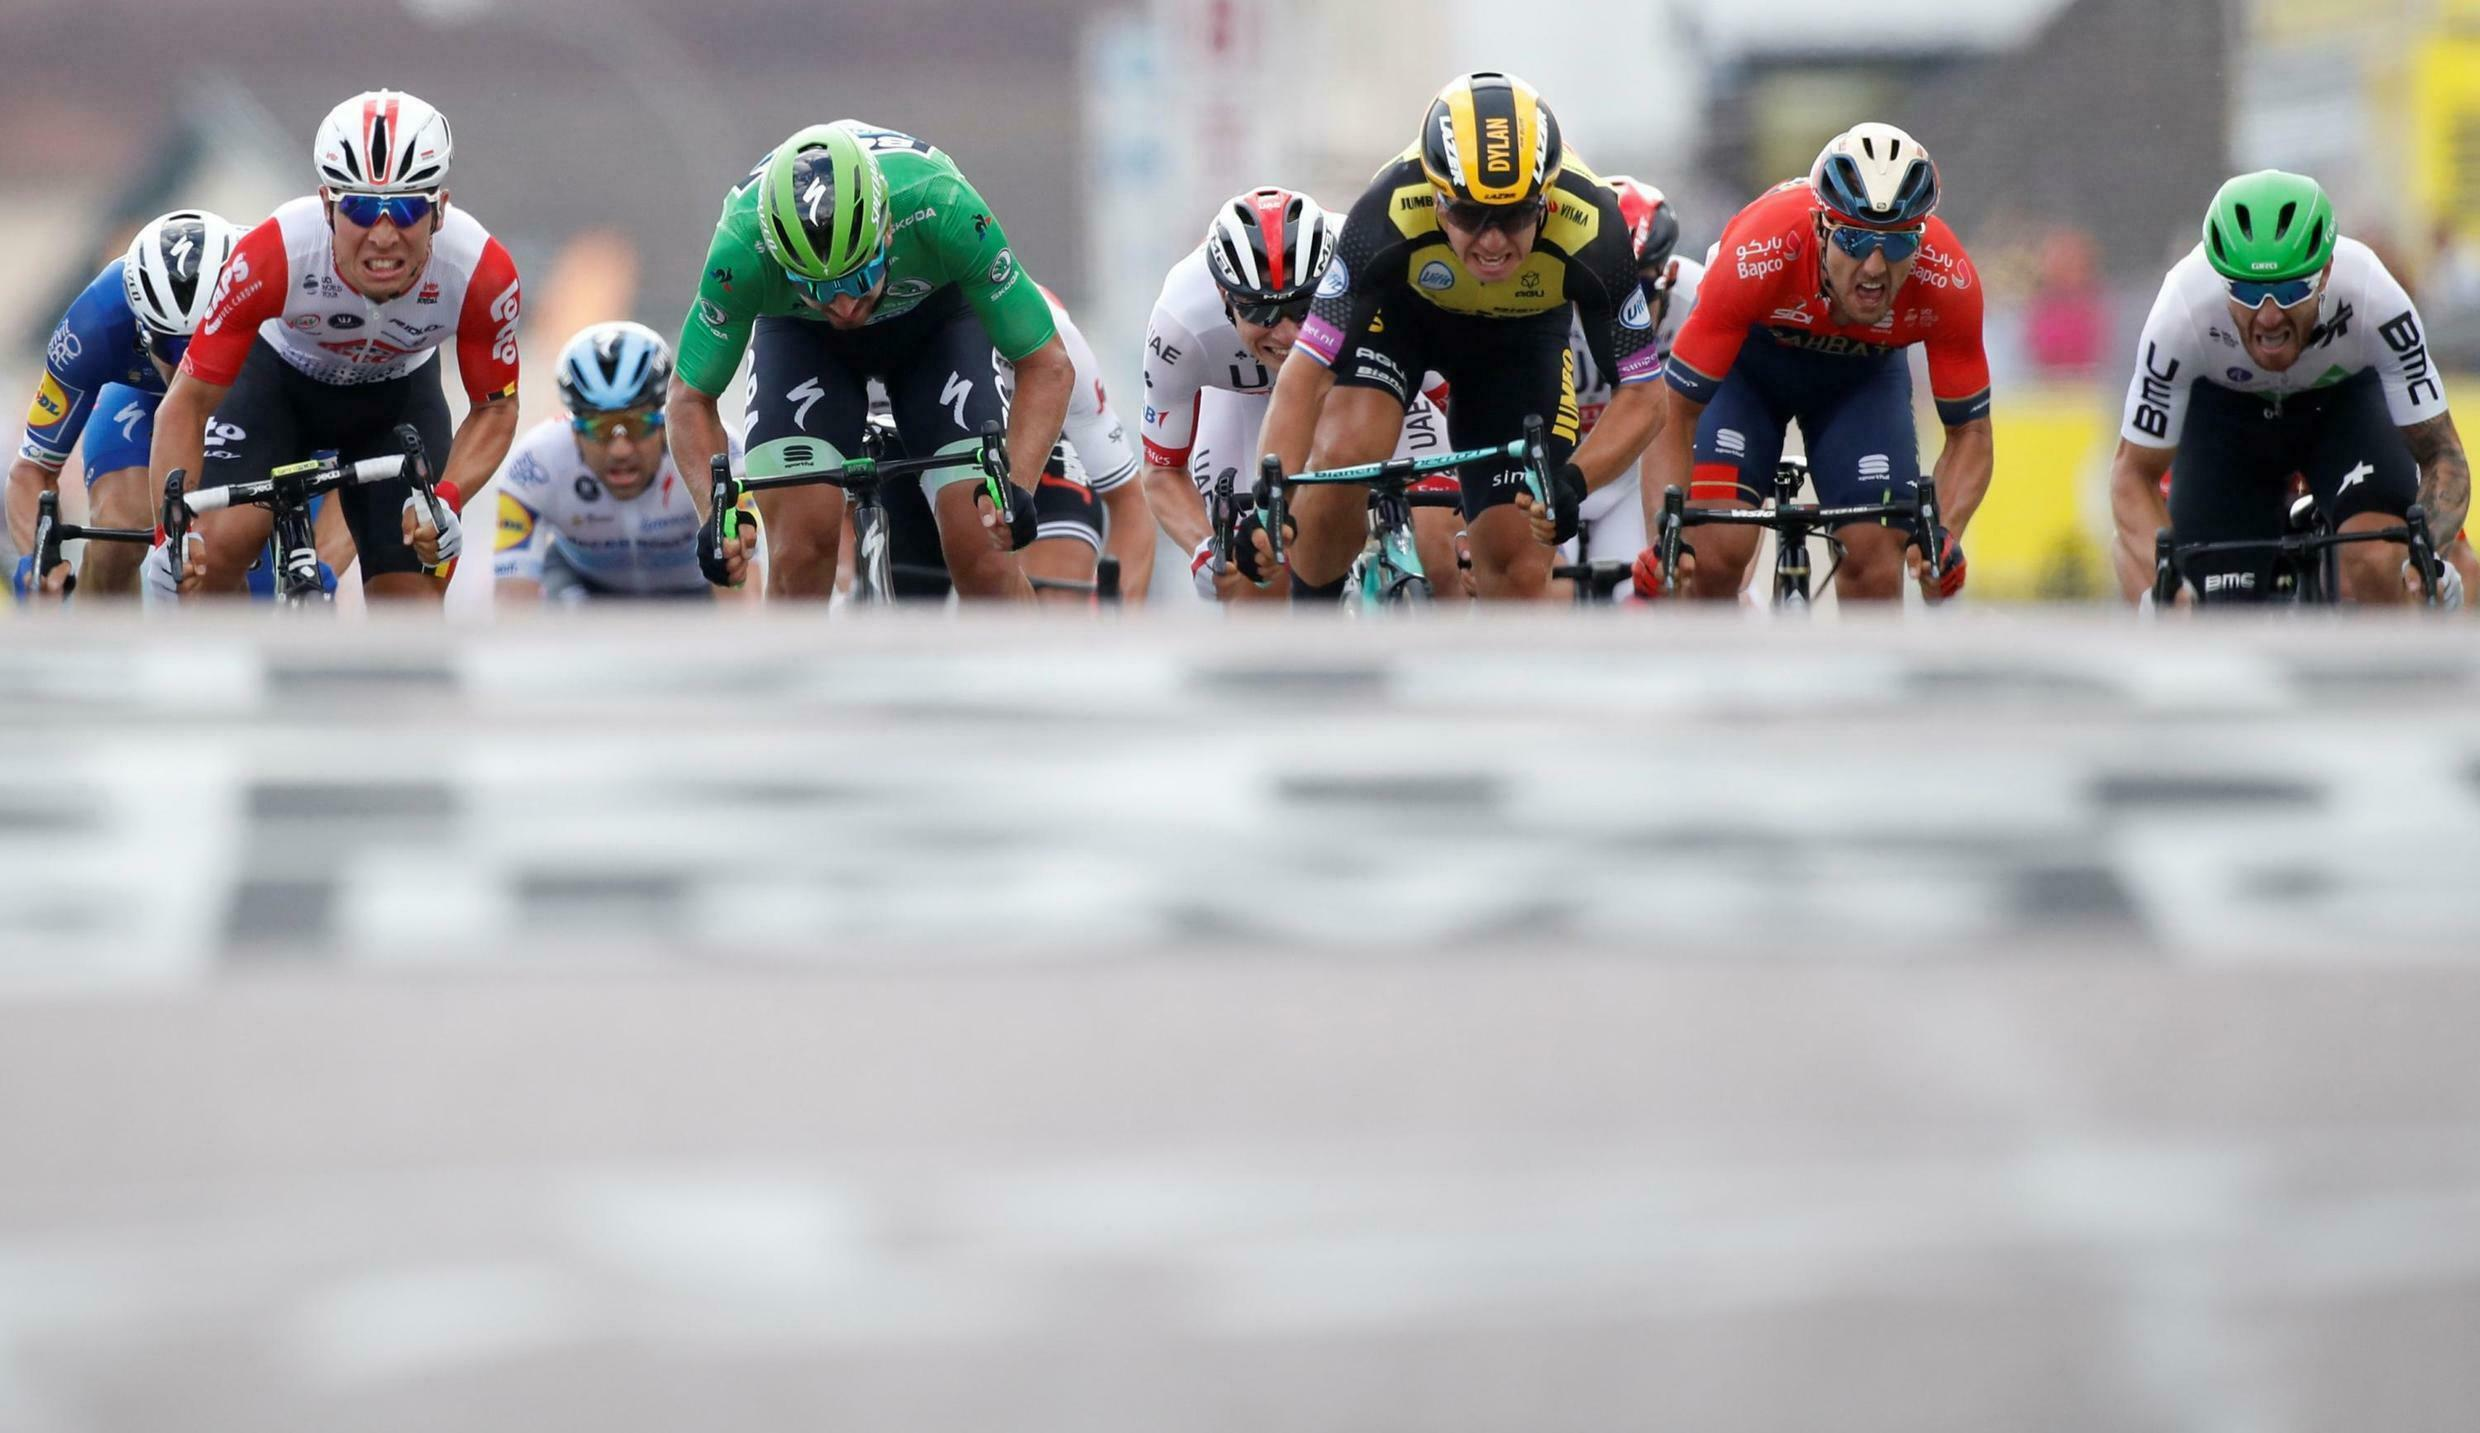 Dylan Groenewegen (yellow) of the Netherlands, Caleb Ewan of Australia, Peter Sagan of Slovakia, and Sonny Colbrelli of Italy sprint towards the finish line of the 230-km stage 7, 12 July 2019.